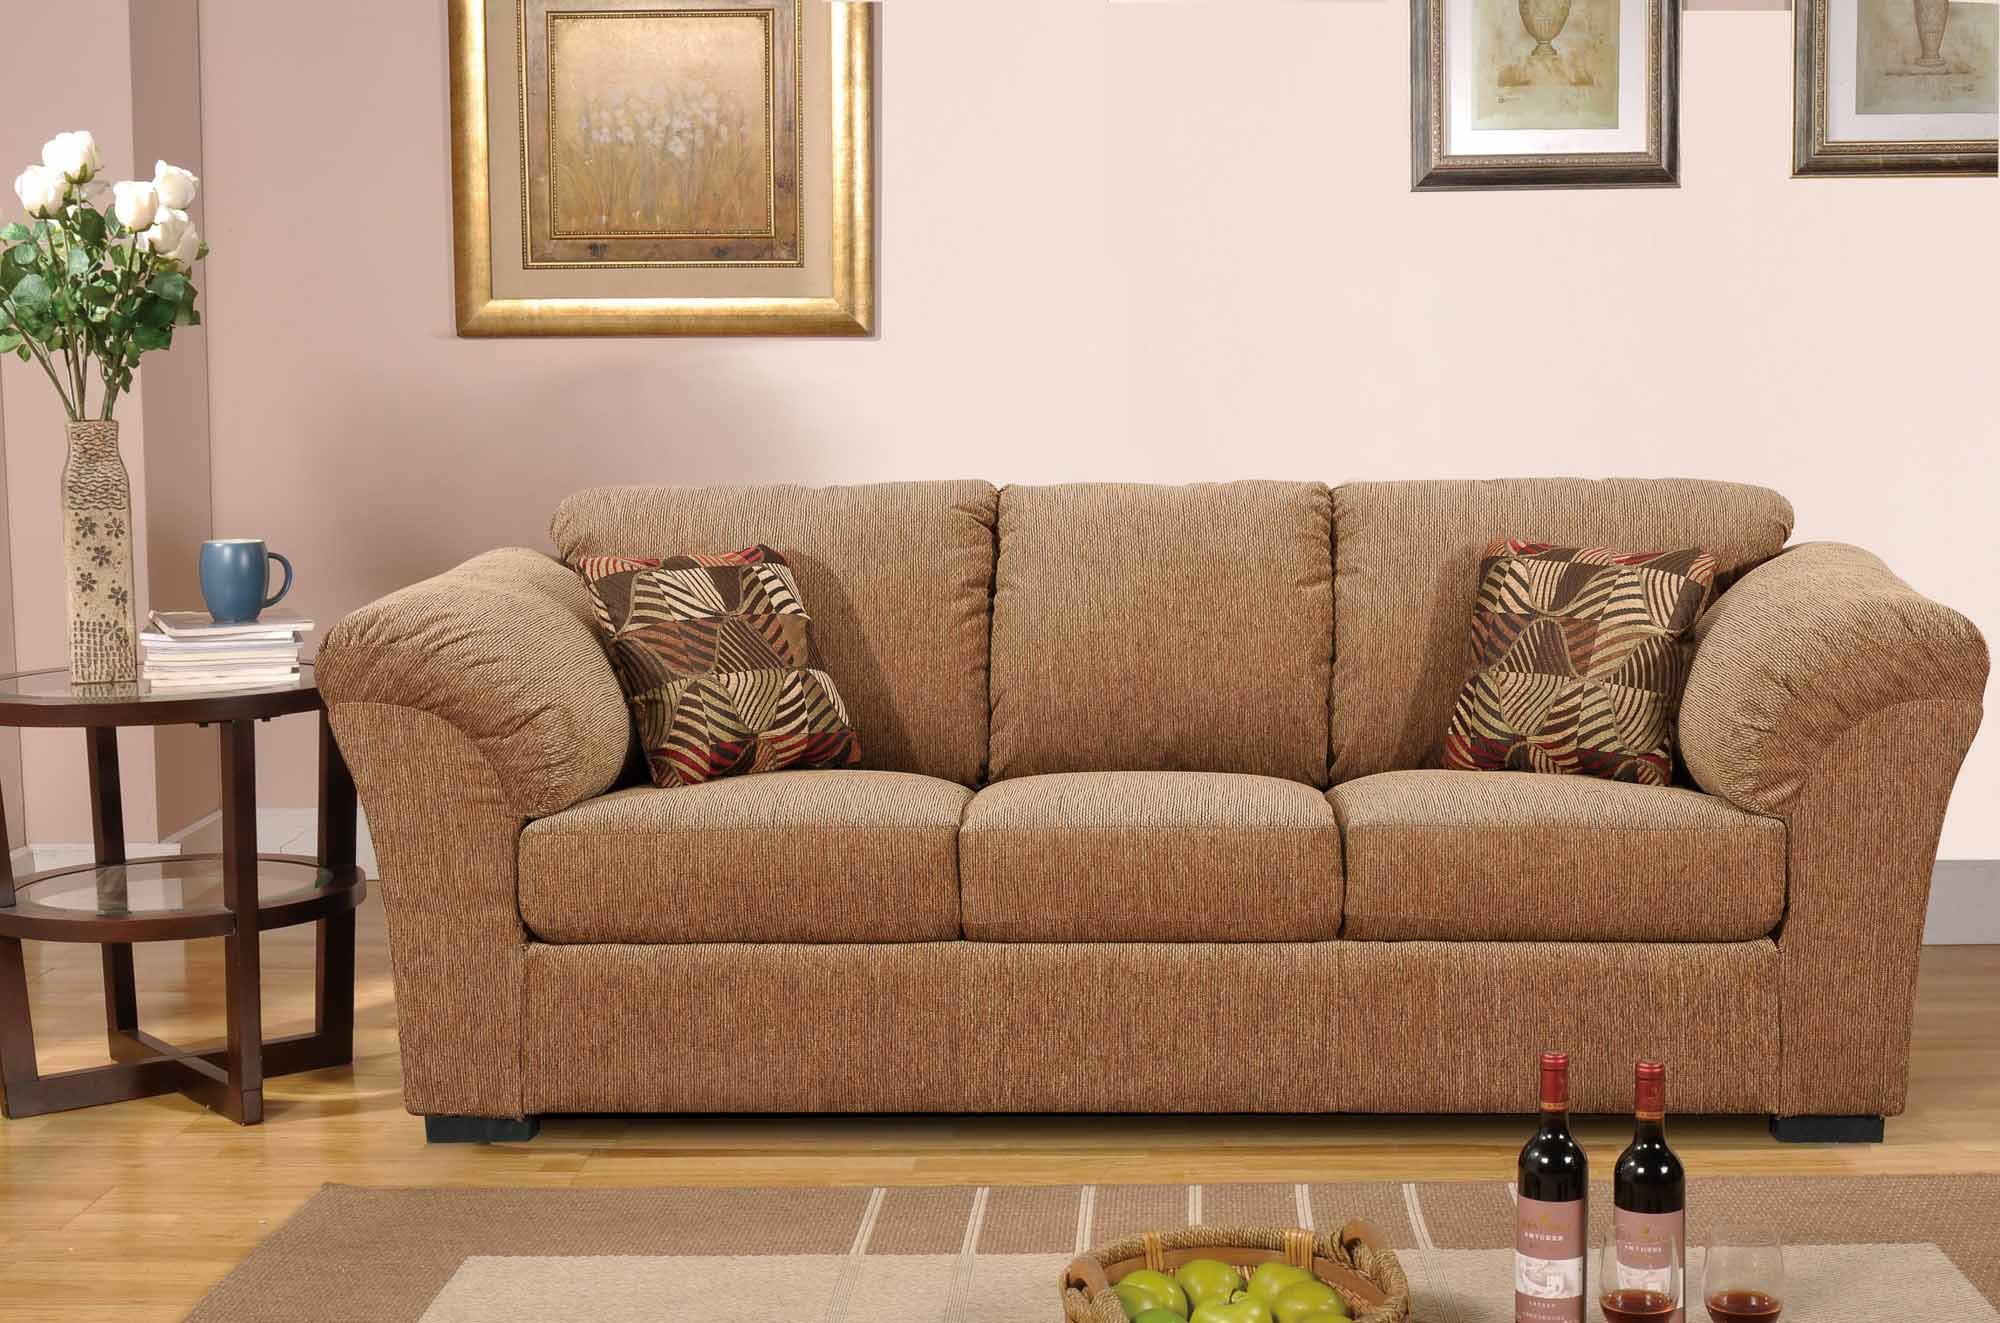 Comfortable Furniture Sofa Set Image